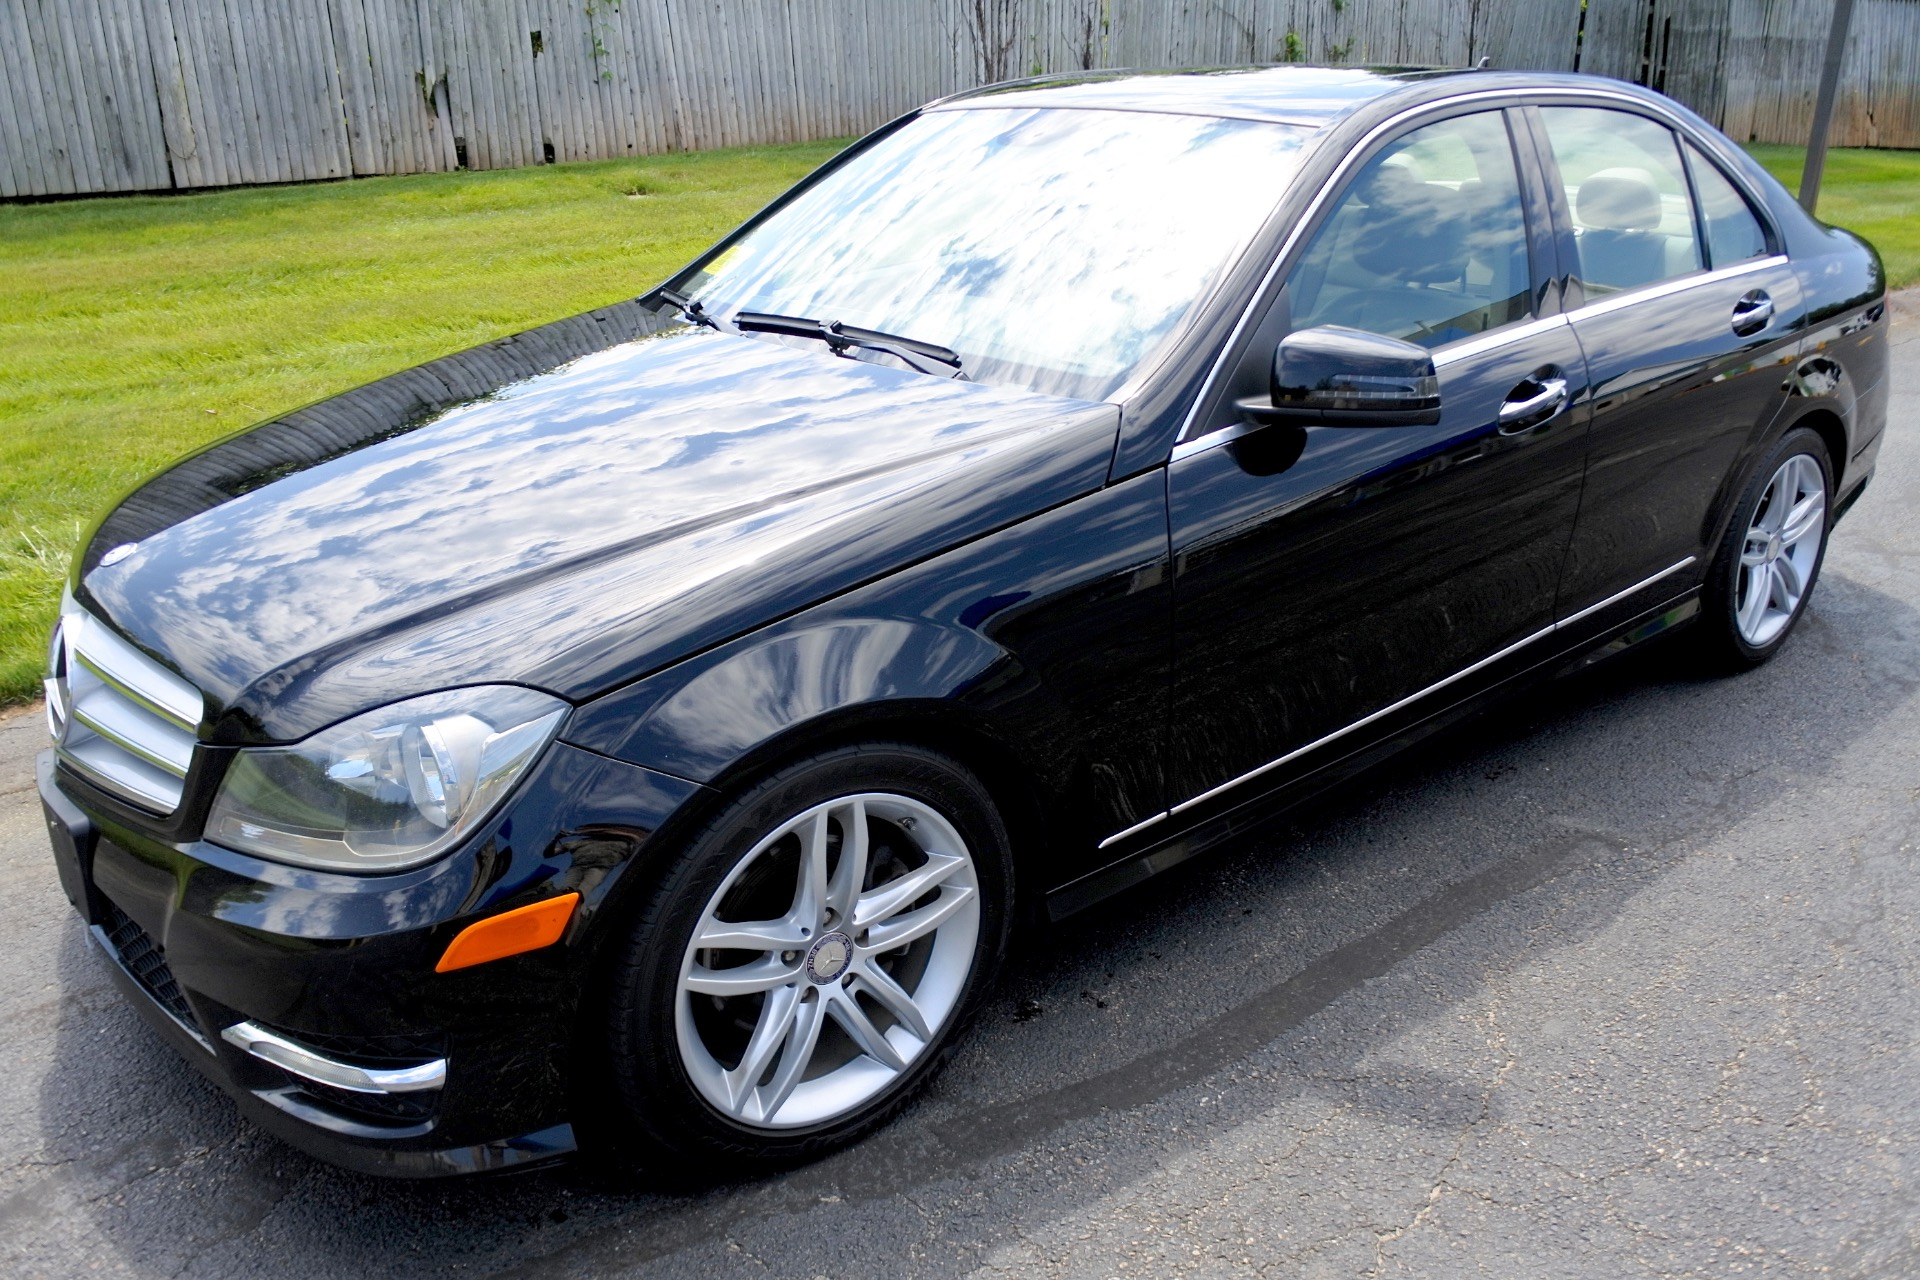 Used 2012 Mercedes-Benz C-class 4dr Sdn C300 Sport 4MATIC Used 2012 Mercedes-Benz C-class 4dr Sdn C300 Sport 4MATIC for sale  at Metro West Motorcars LLC in Shrewsbury MA 1